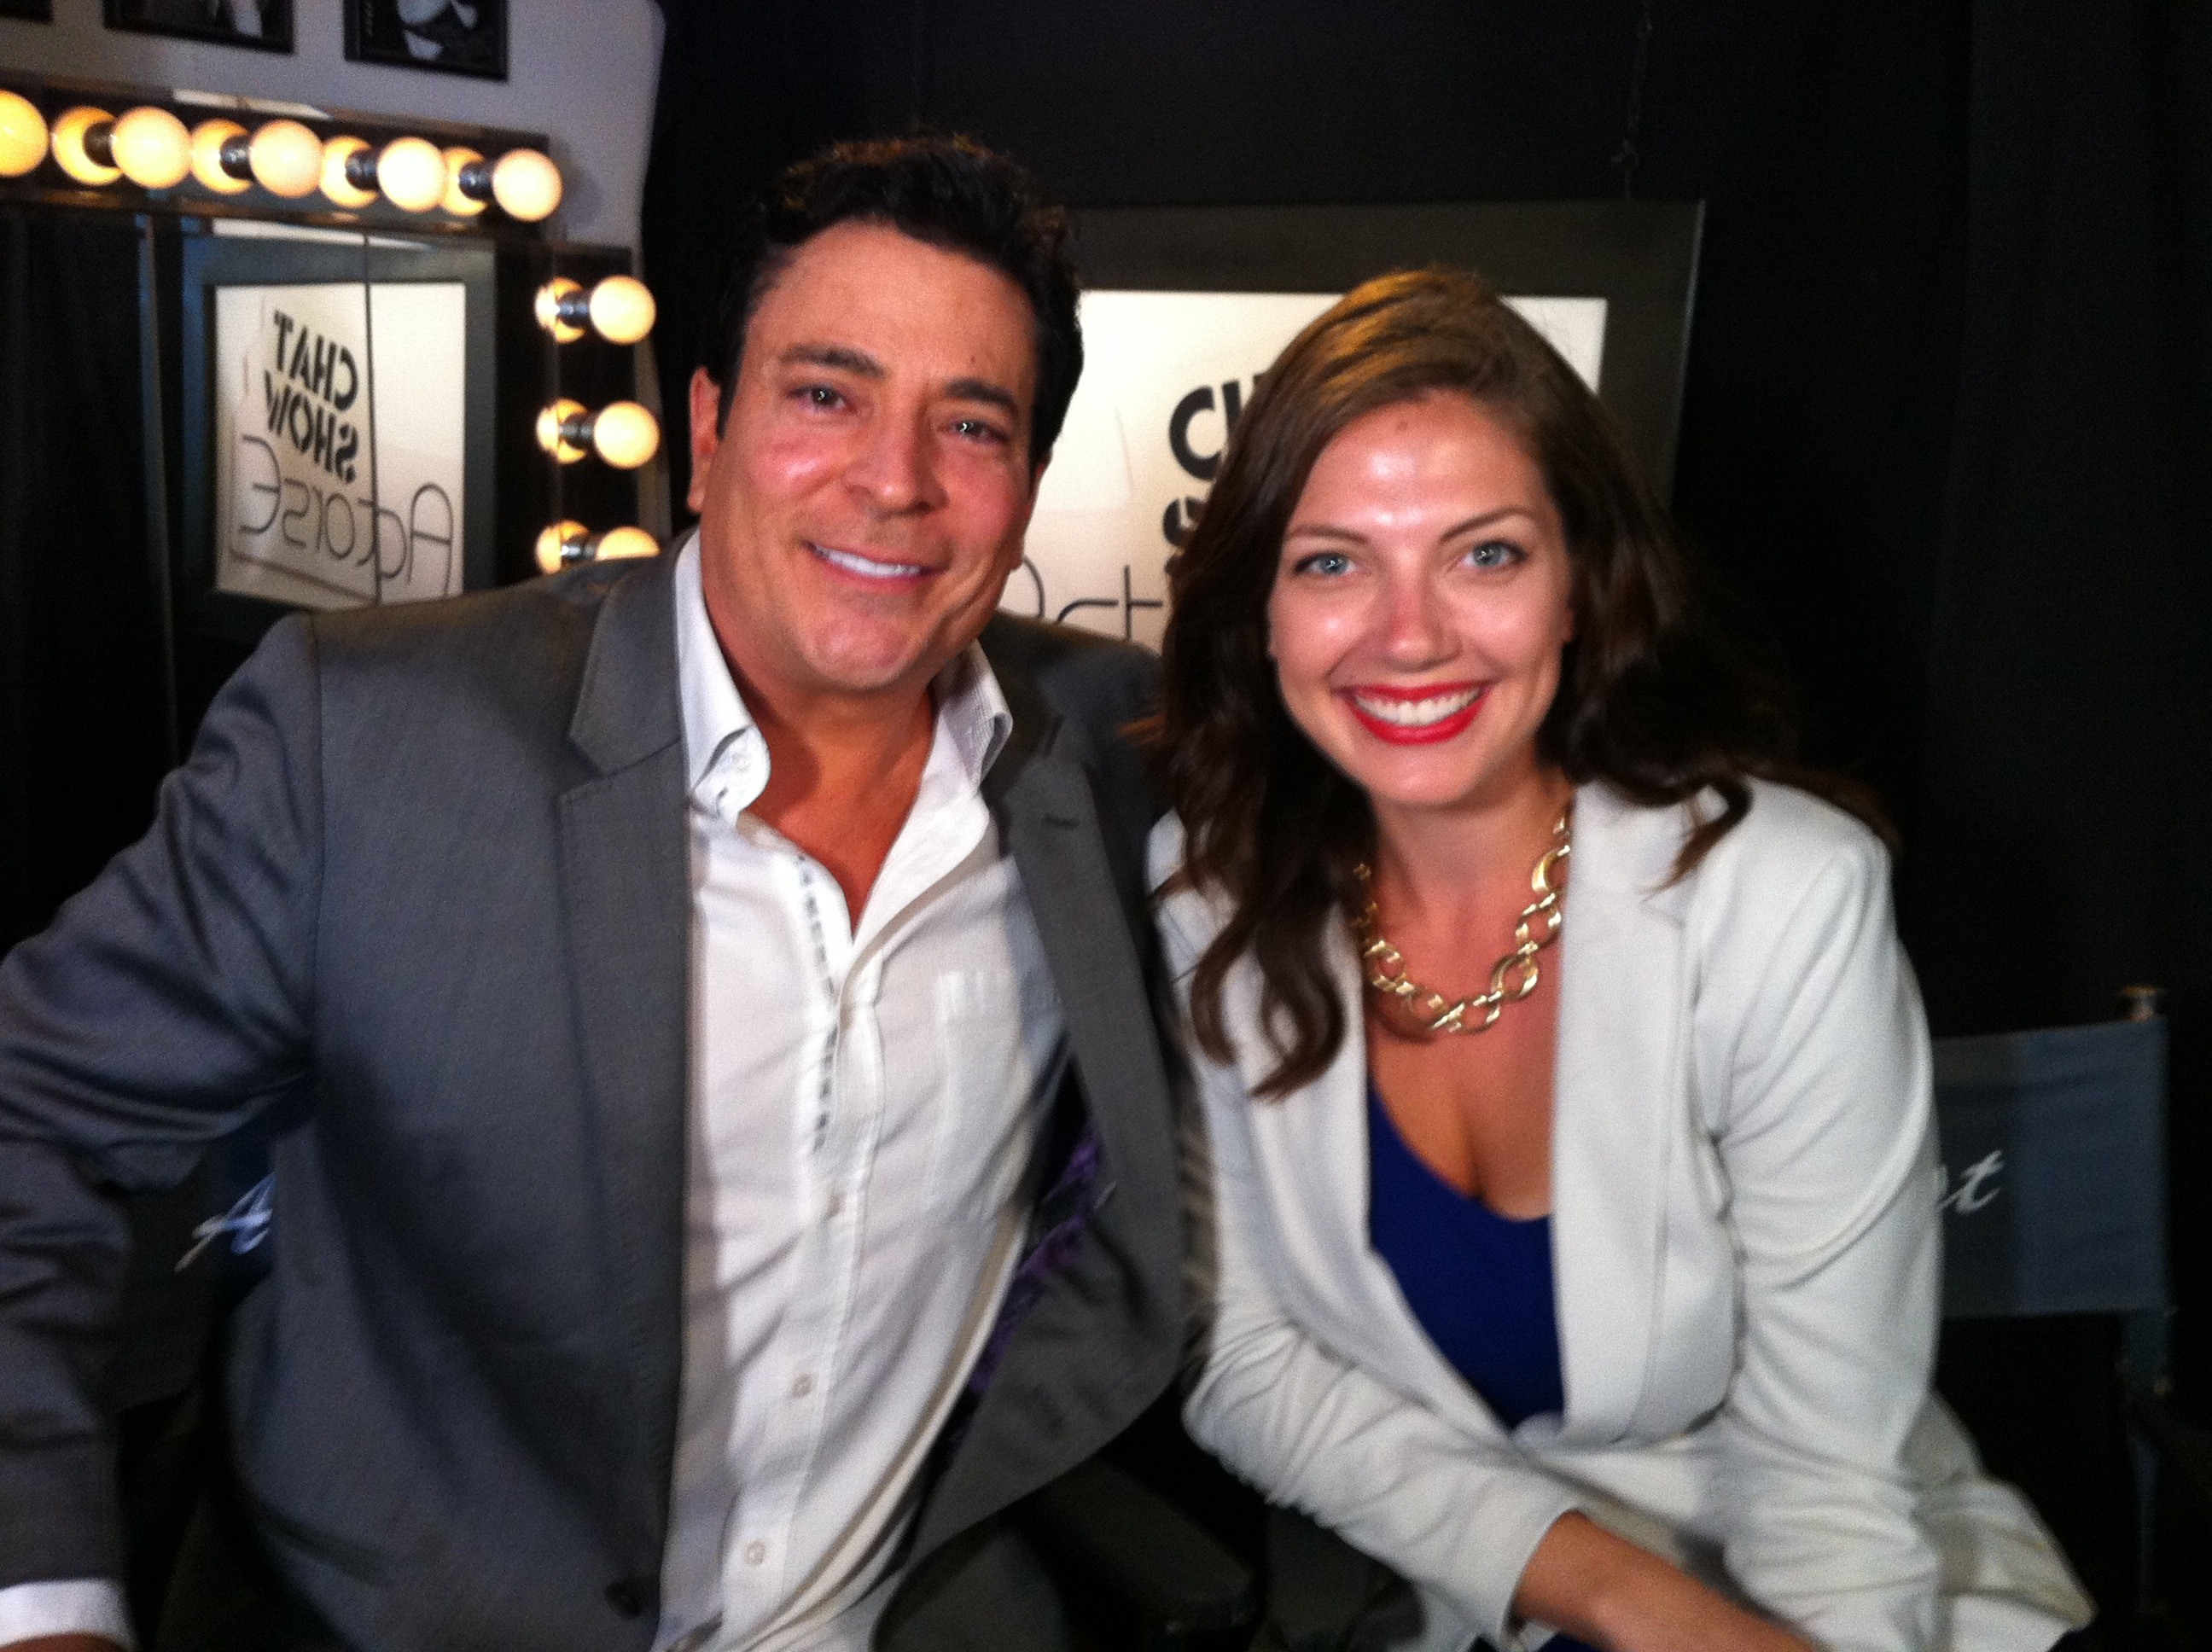 Writer/Director Daniel R. Chavez guest appearance on ActorsE Chat with host Julie-Kathleen Langan.